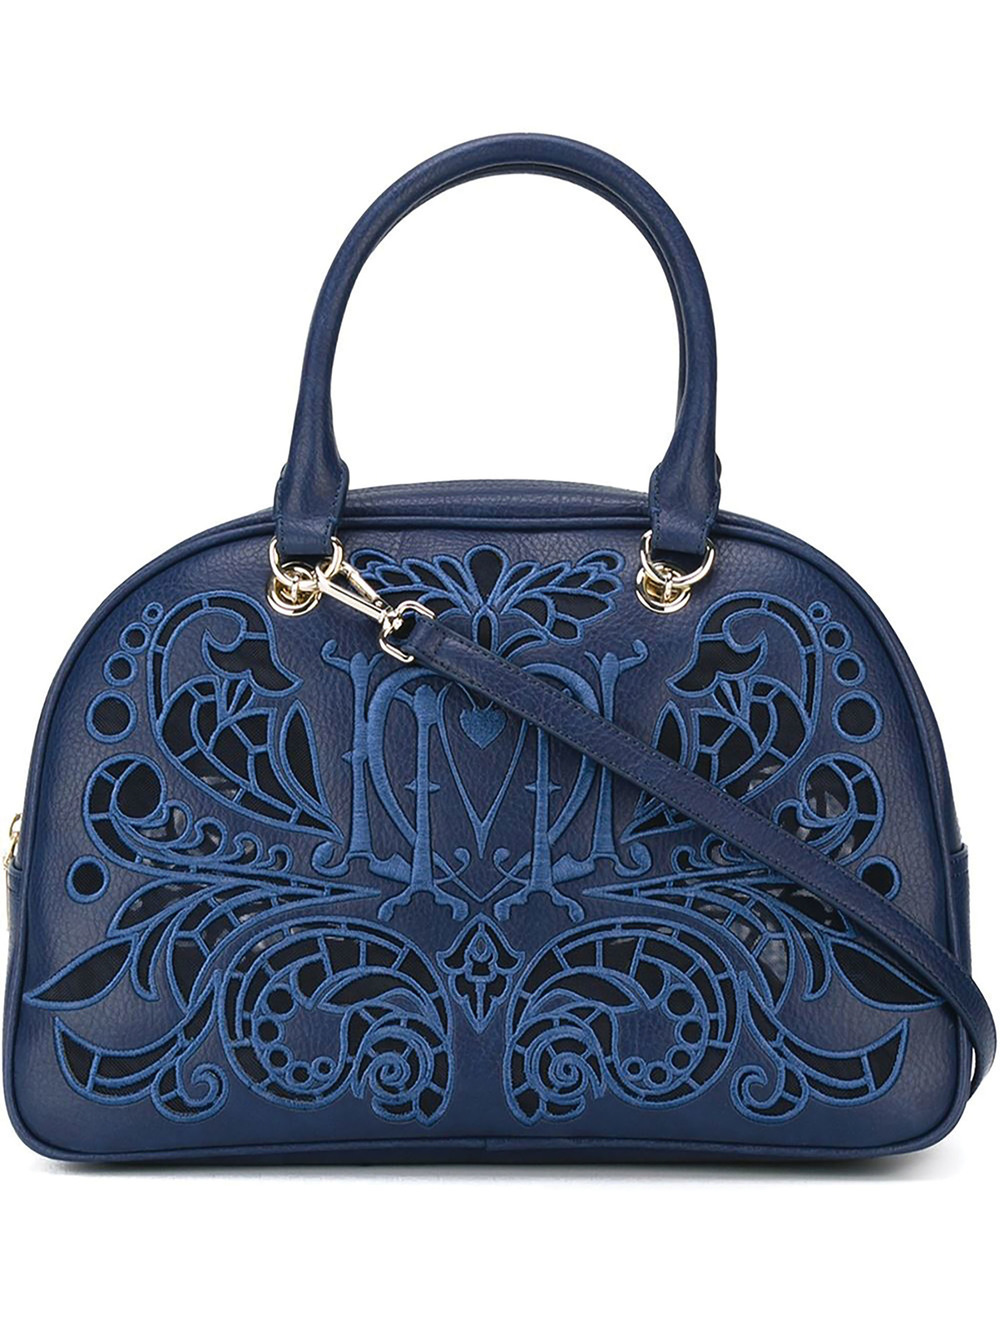 Moschino Embroidered Bowling Tote $400.75